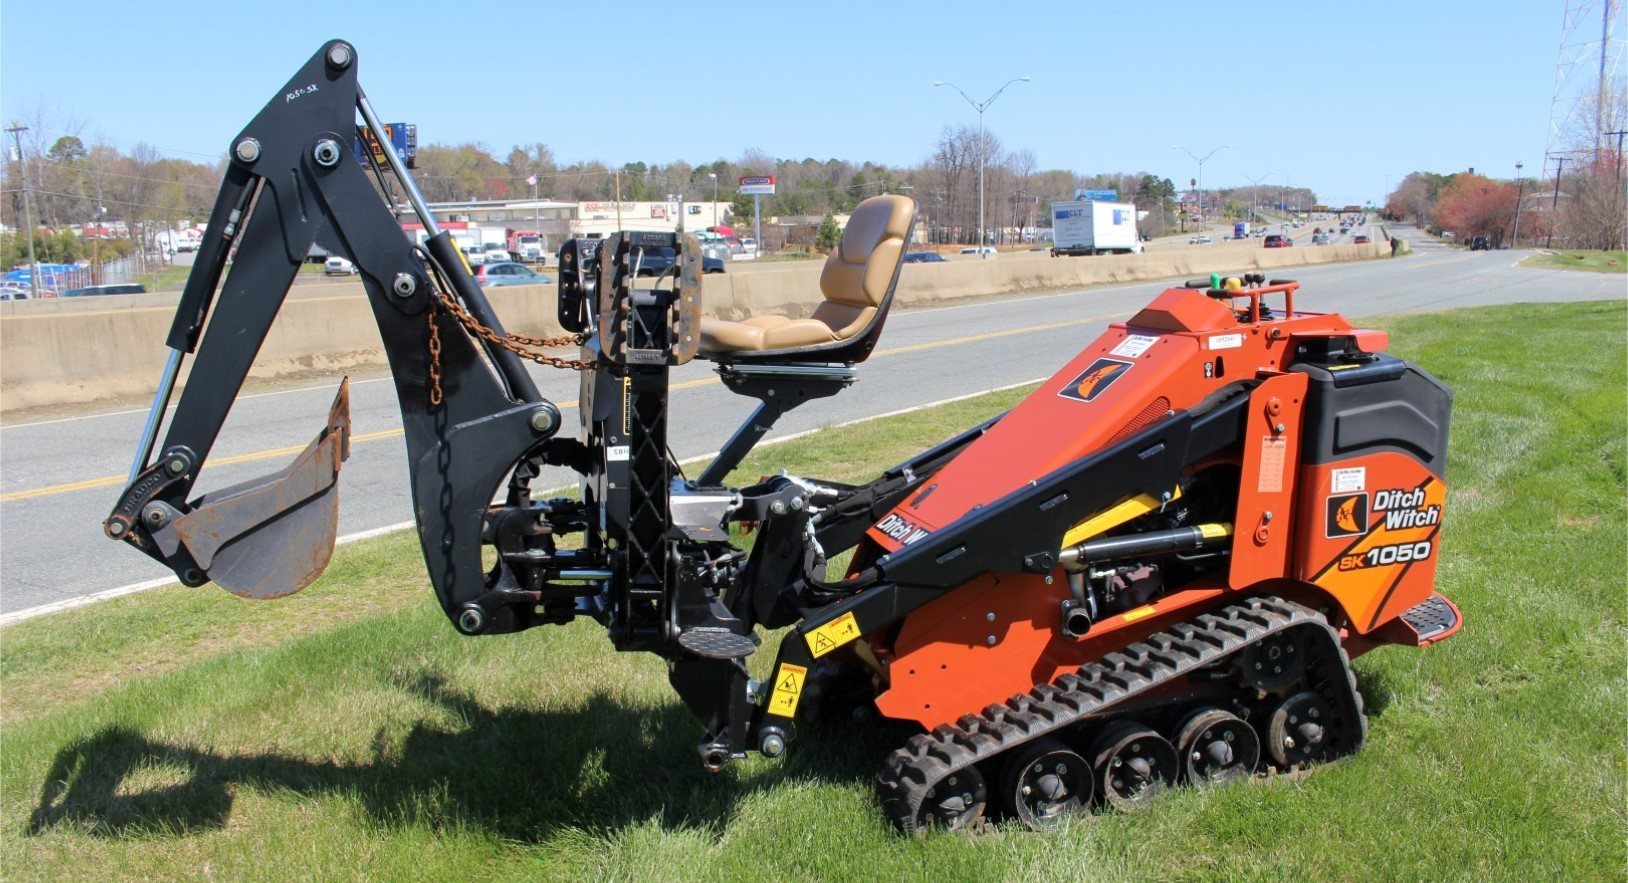 New, Ditch Witch, SK1050 w/ Backhoe Attachment, Skid Steers